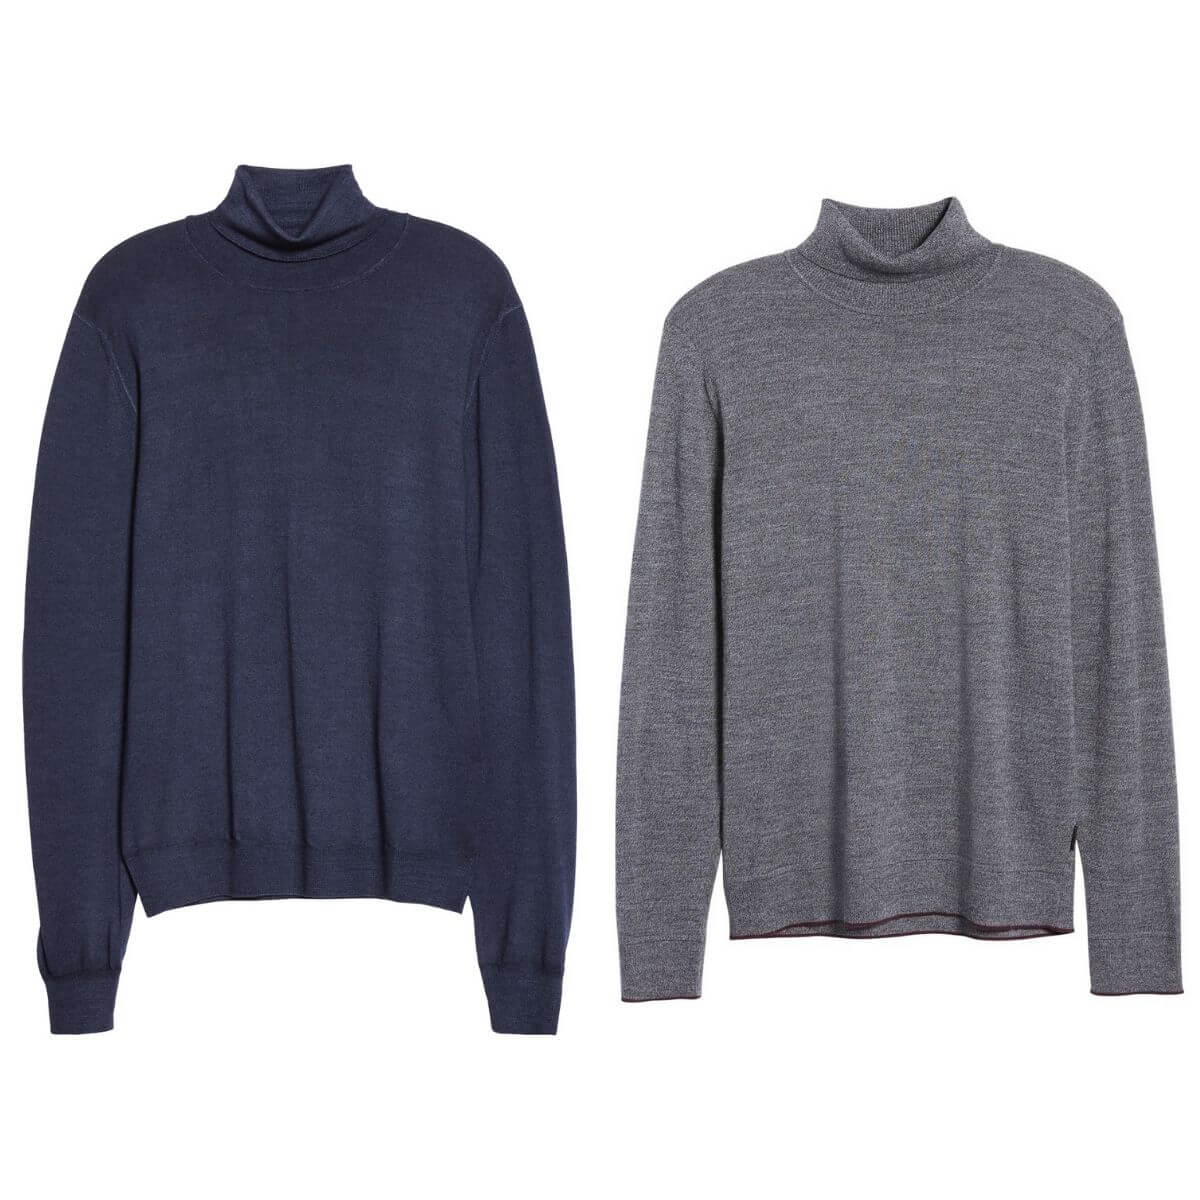 Two turtleneck sweaters, one in navy and one in grey.